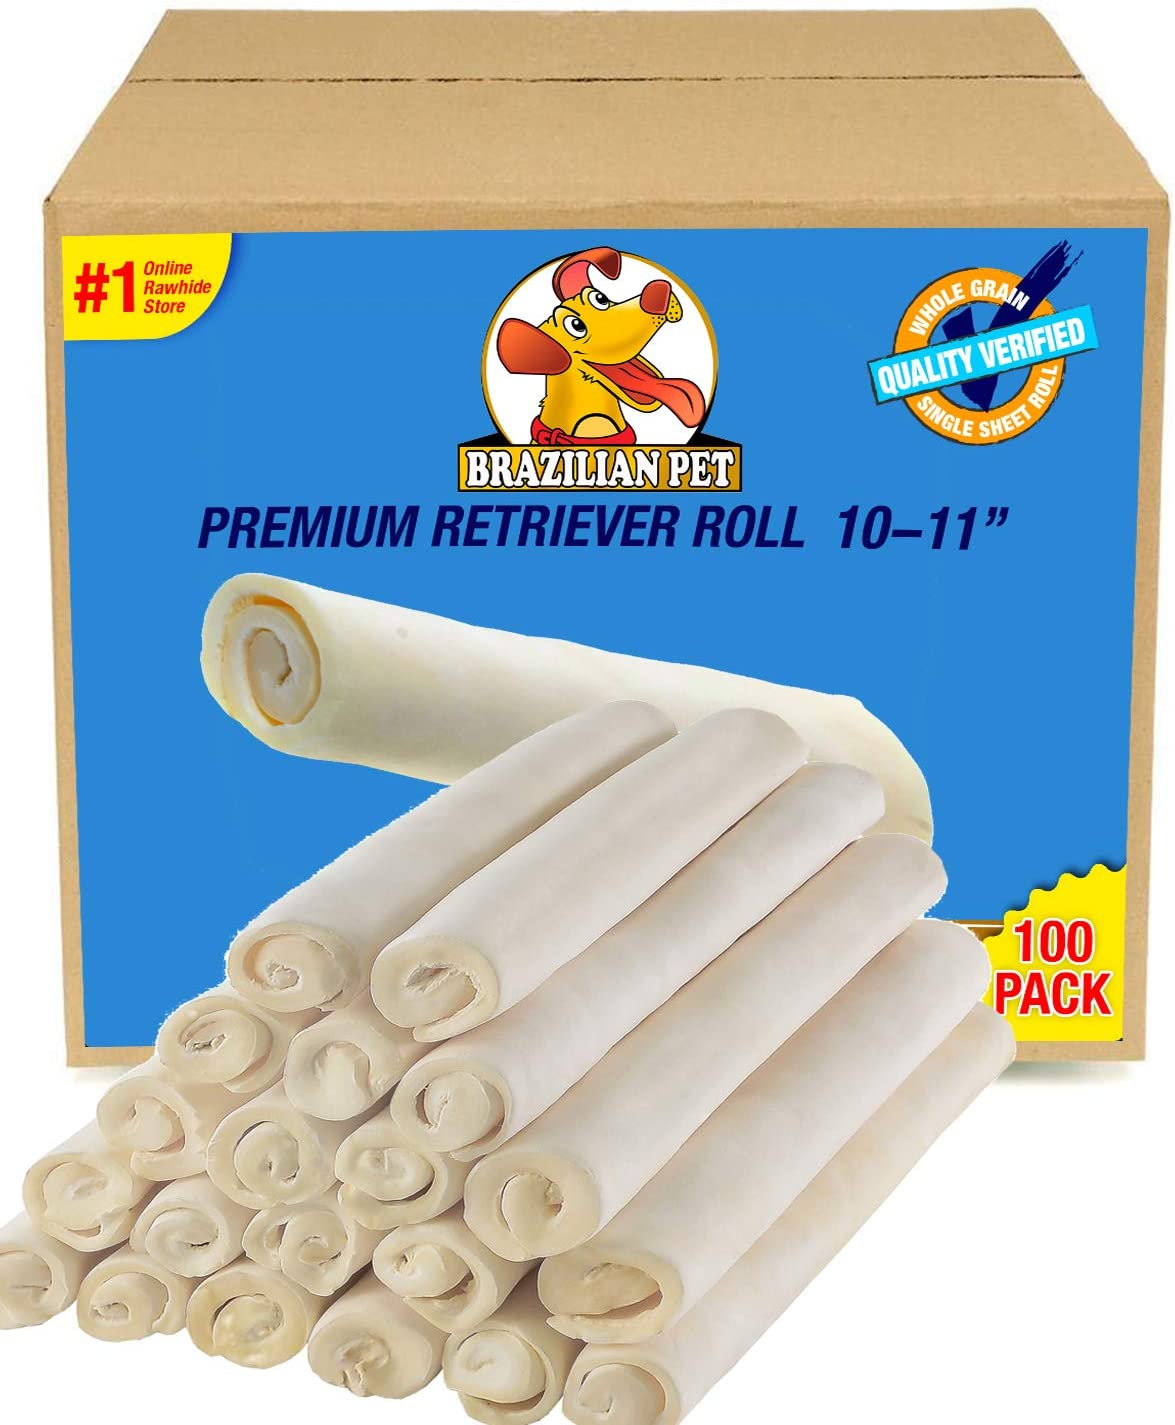 Brazilian Pet Premium Retriever Rolls 10-11 Inches, 100 Pack lLong Lasting. The Best Behavioral Dog Chewing Solution Treat. No Artificial preservatives. 100 Pack